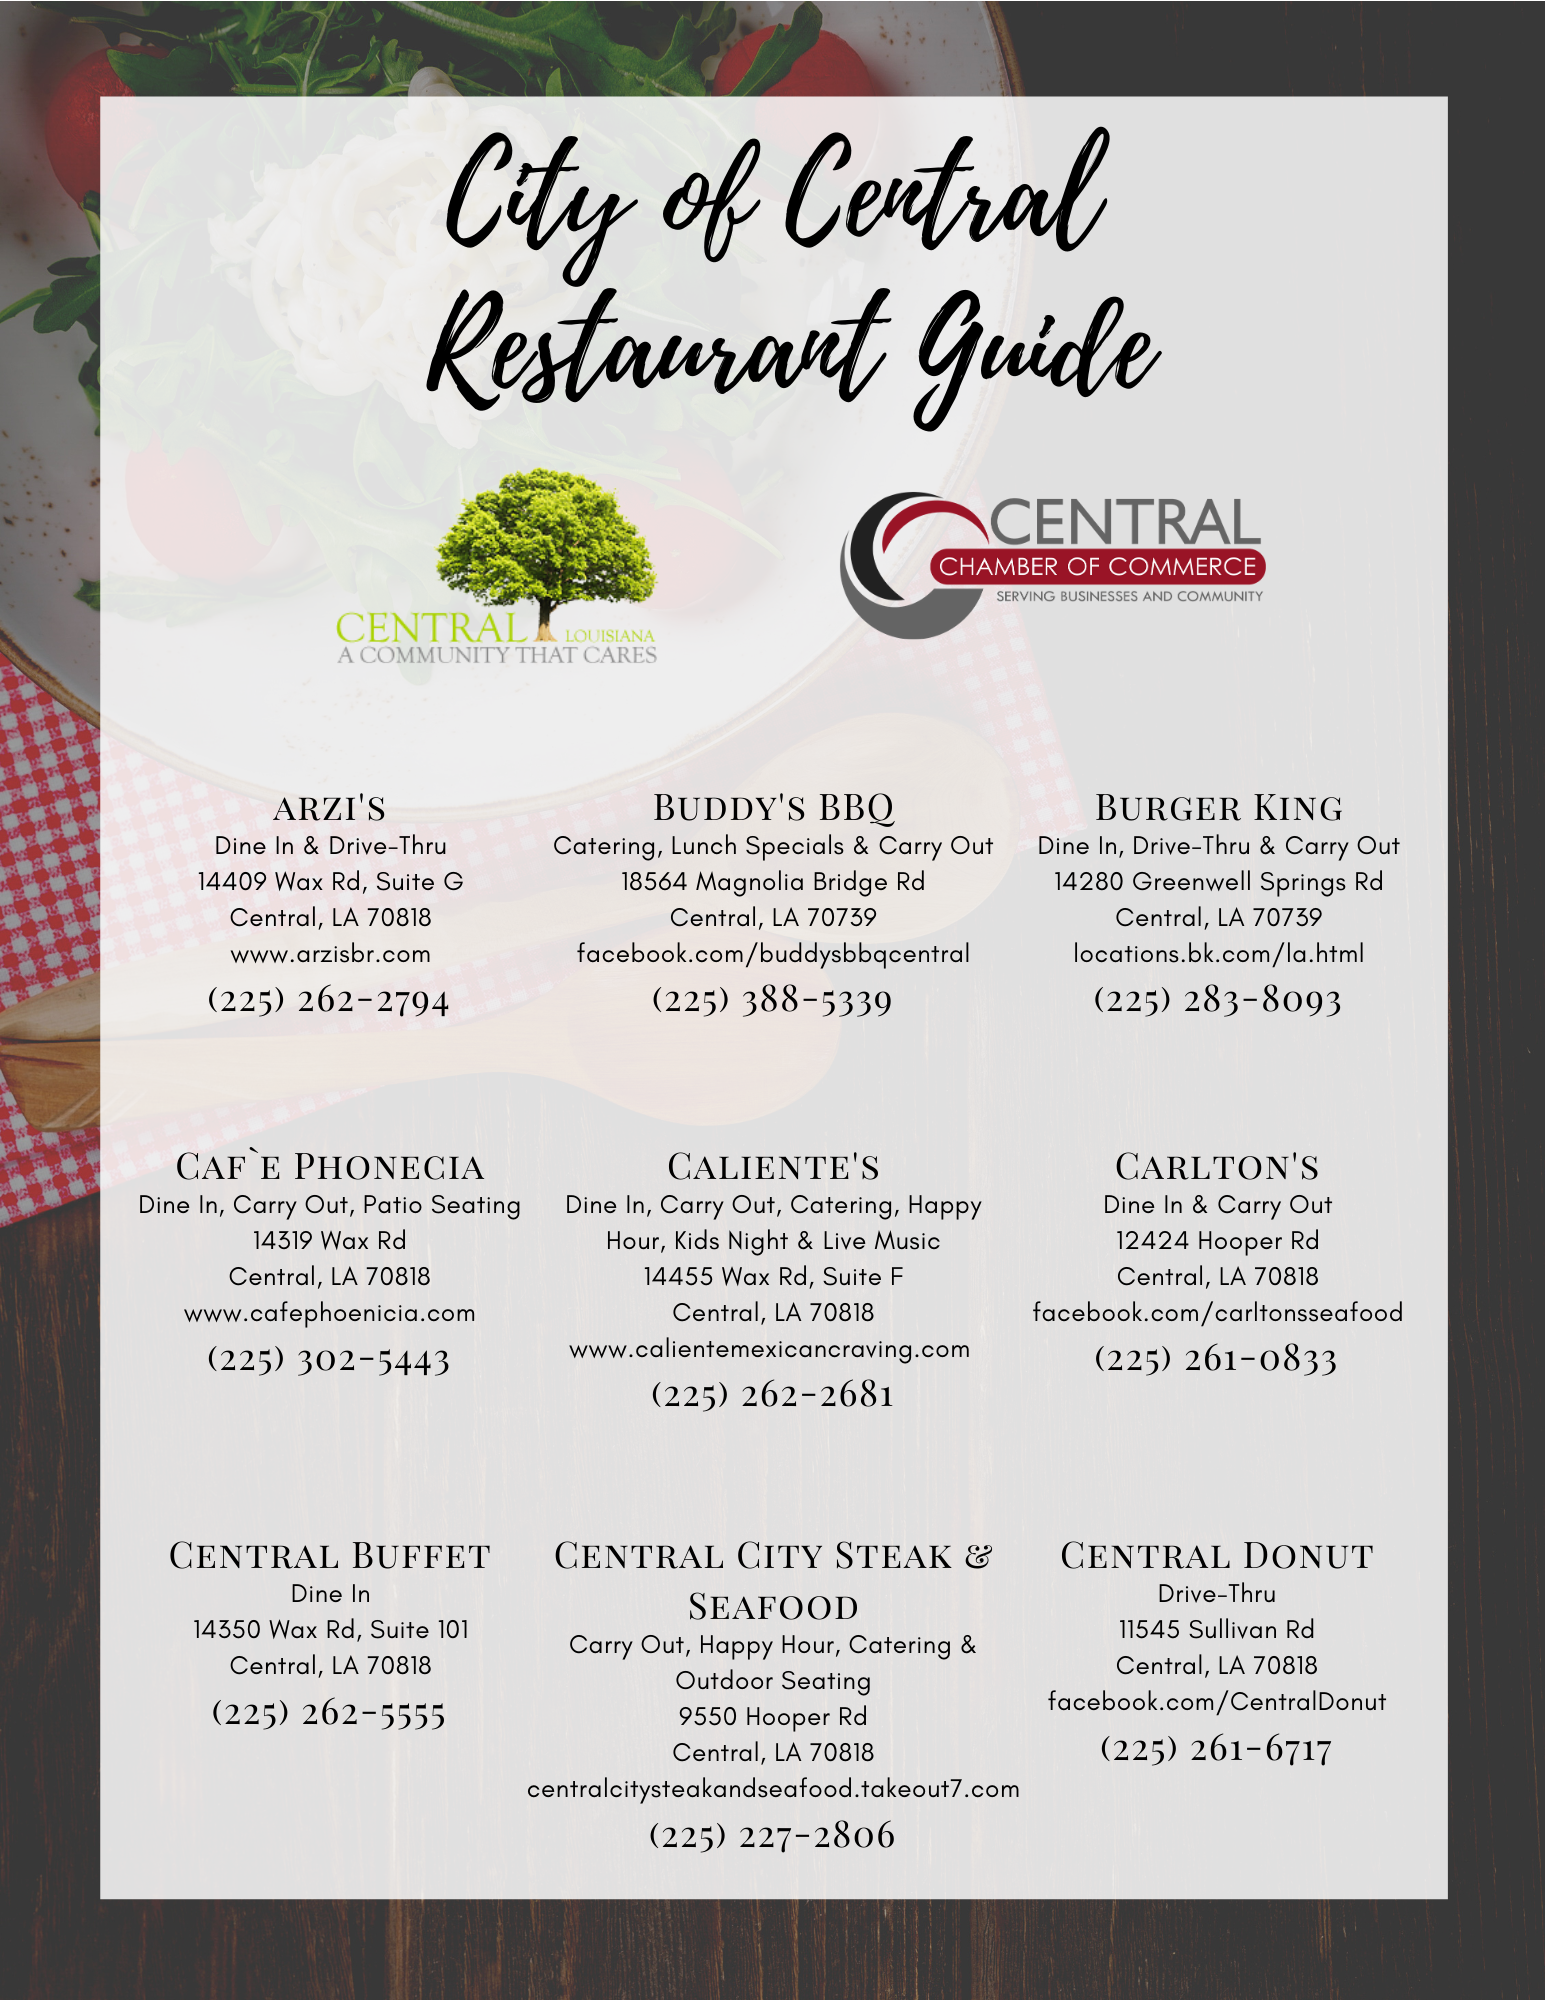 A directory of restaurants in Central